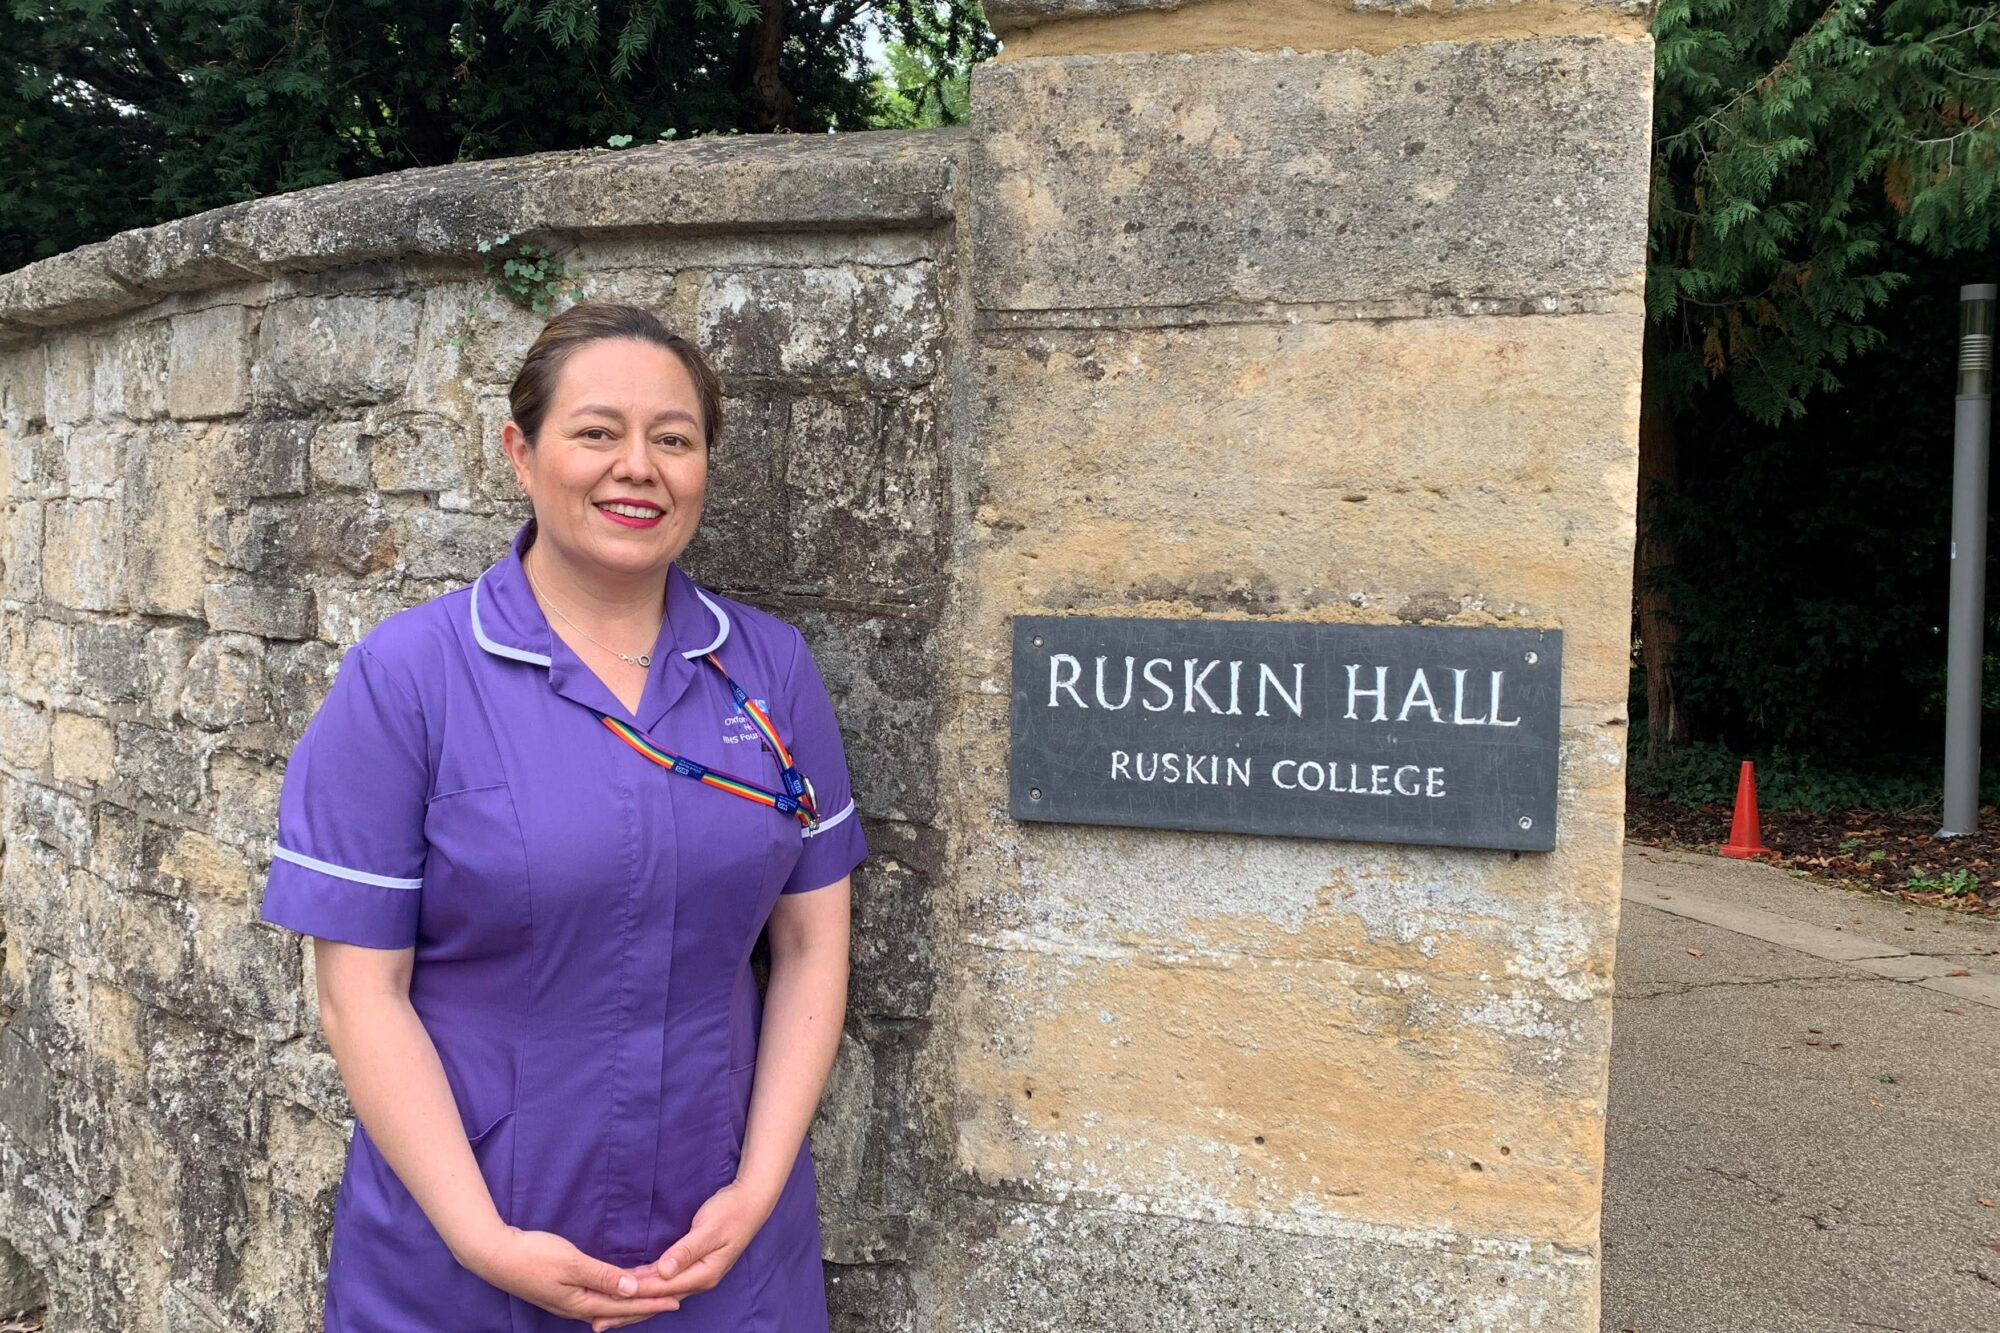 From Access to Nursing to Nursing Associate featured image